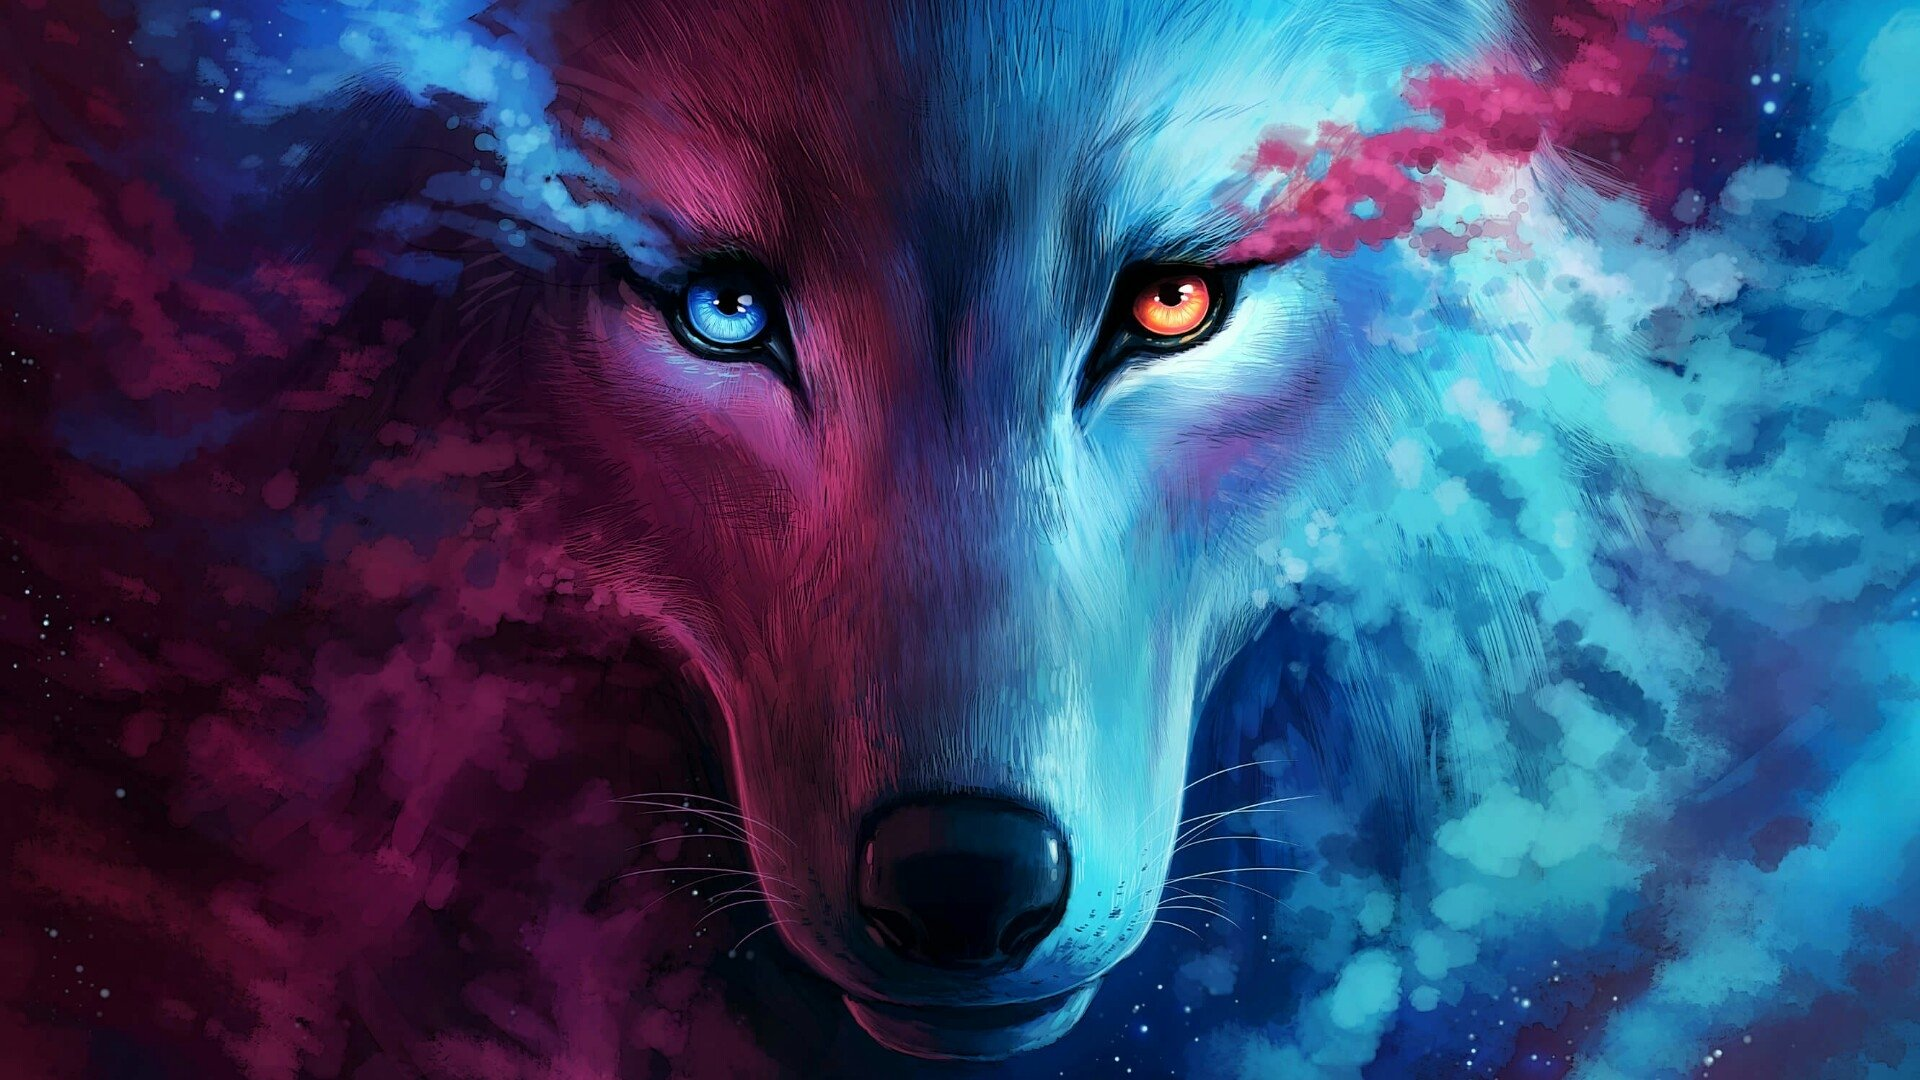 Fantasy Wolf Hd Wallpaper Background Image 1920x1080 Id 994588 Wallpaper Abyss